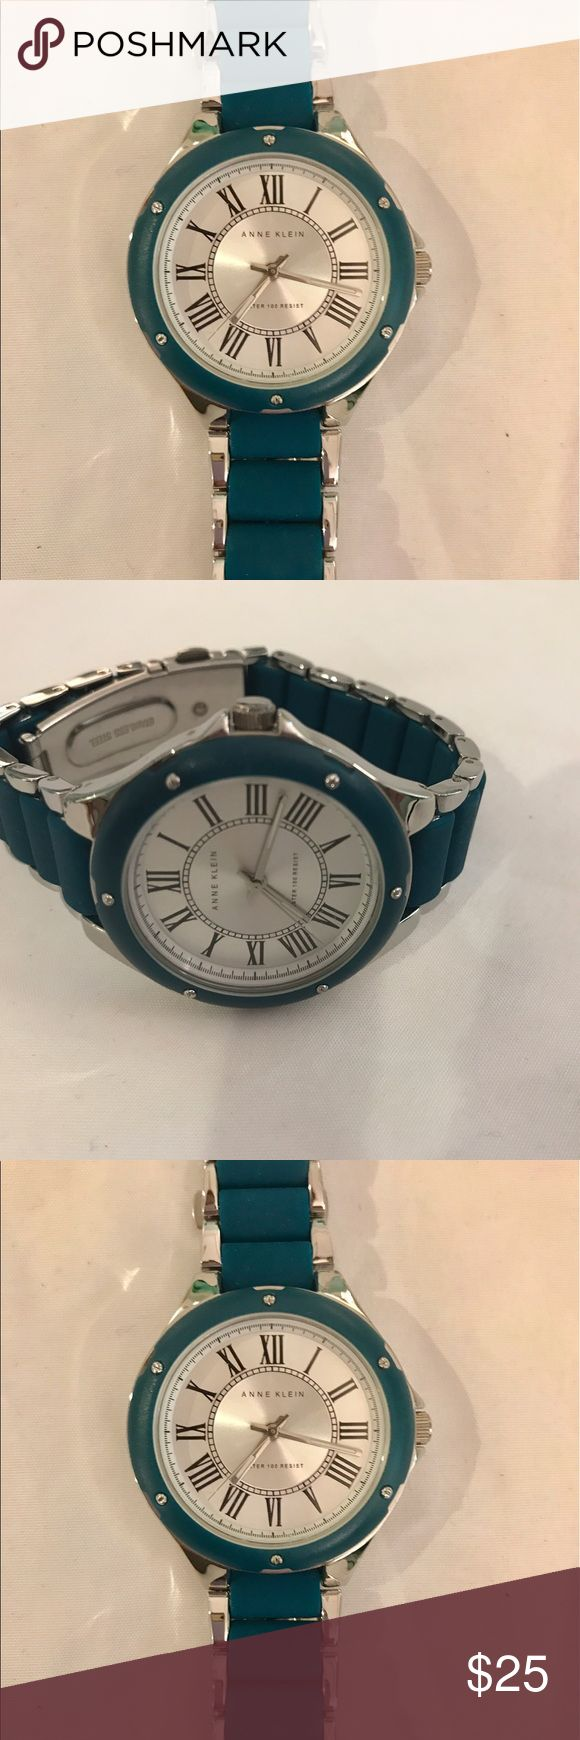 Anne Klein Watch- Silver/Turguoise Band NEVER WORN Anne Klein Watch- Silver/ Turguoise Band NEVER WORN- Will probably need to have links taken out Anne Klein Accessories Watches